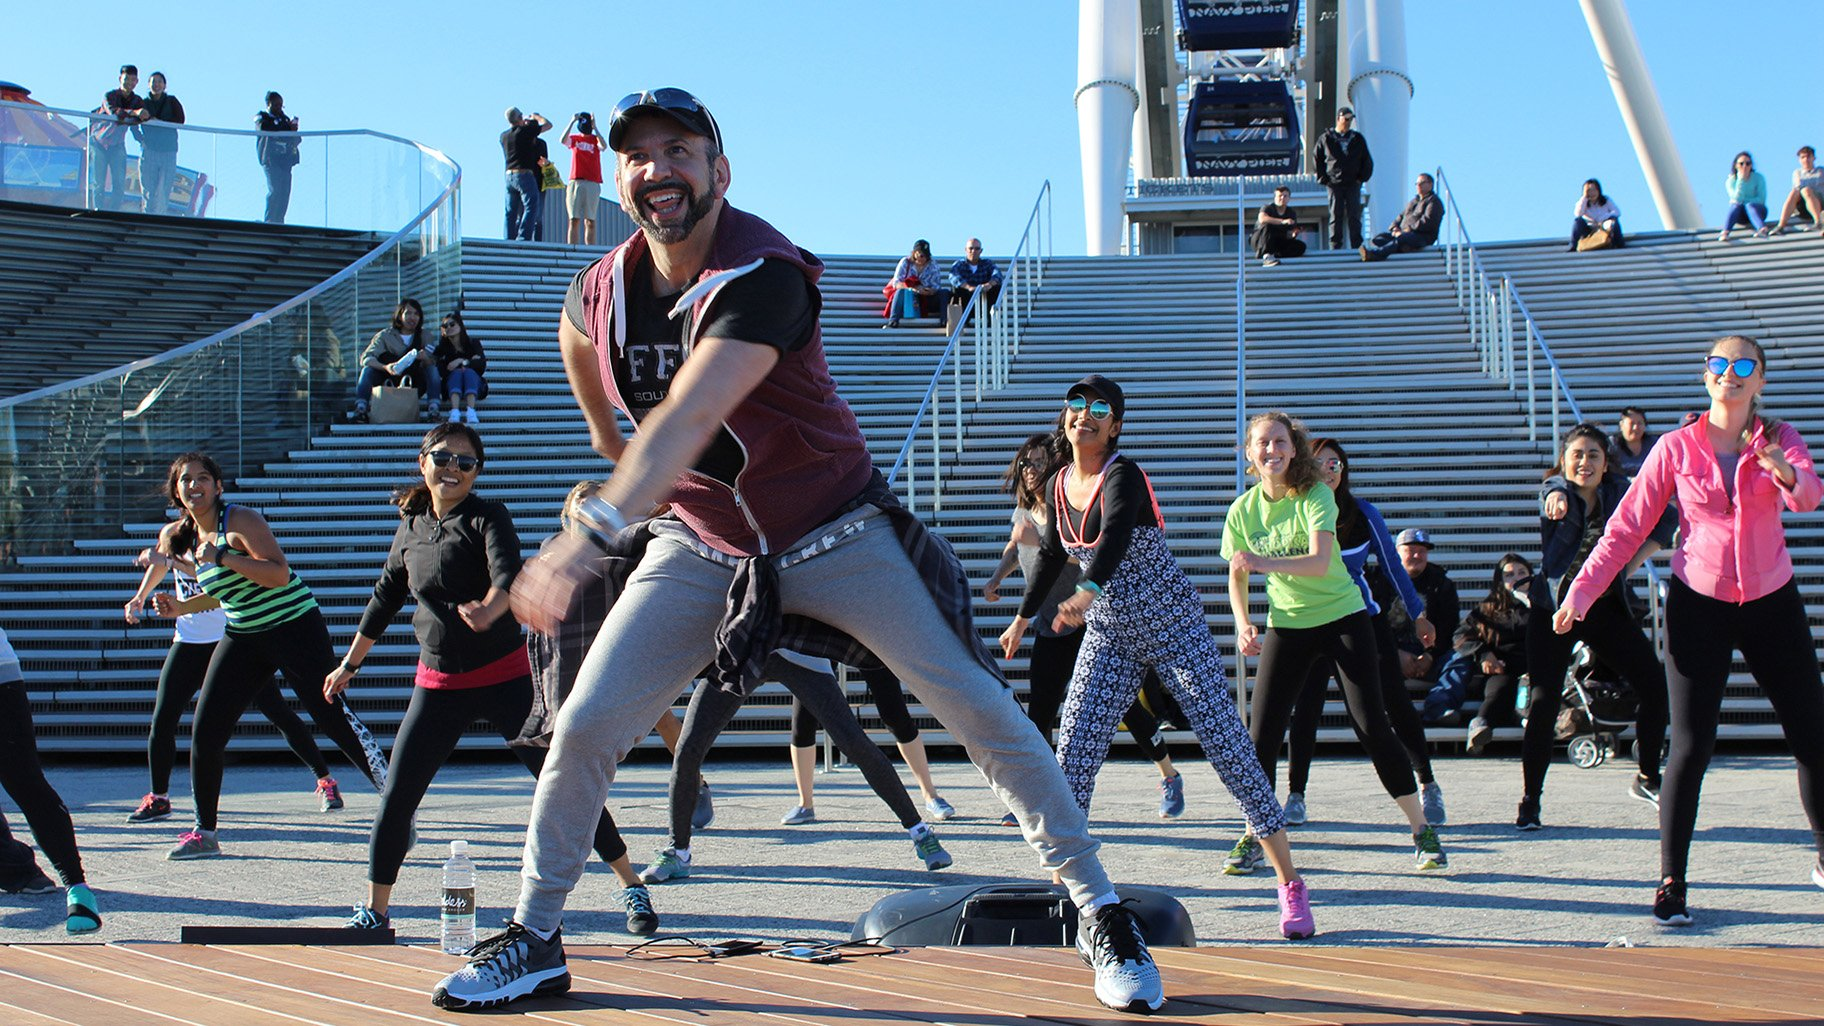 Get Fit at Free Outdoor Workouts in Chicago This Summer